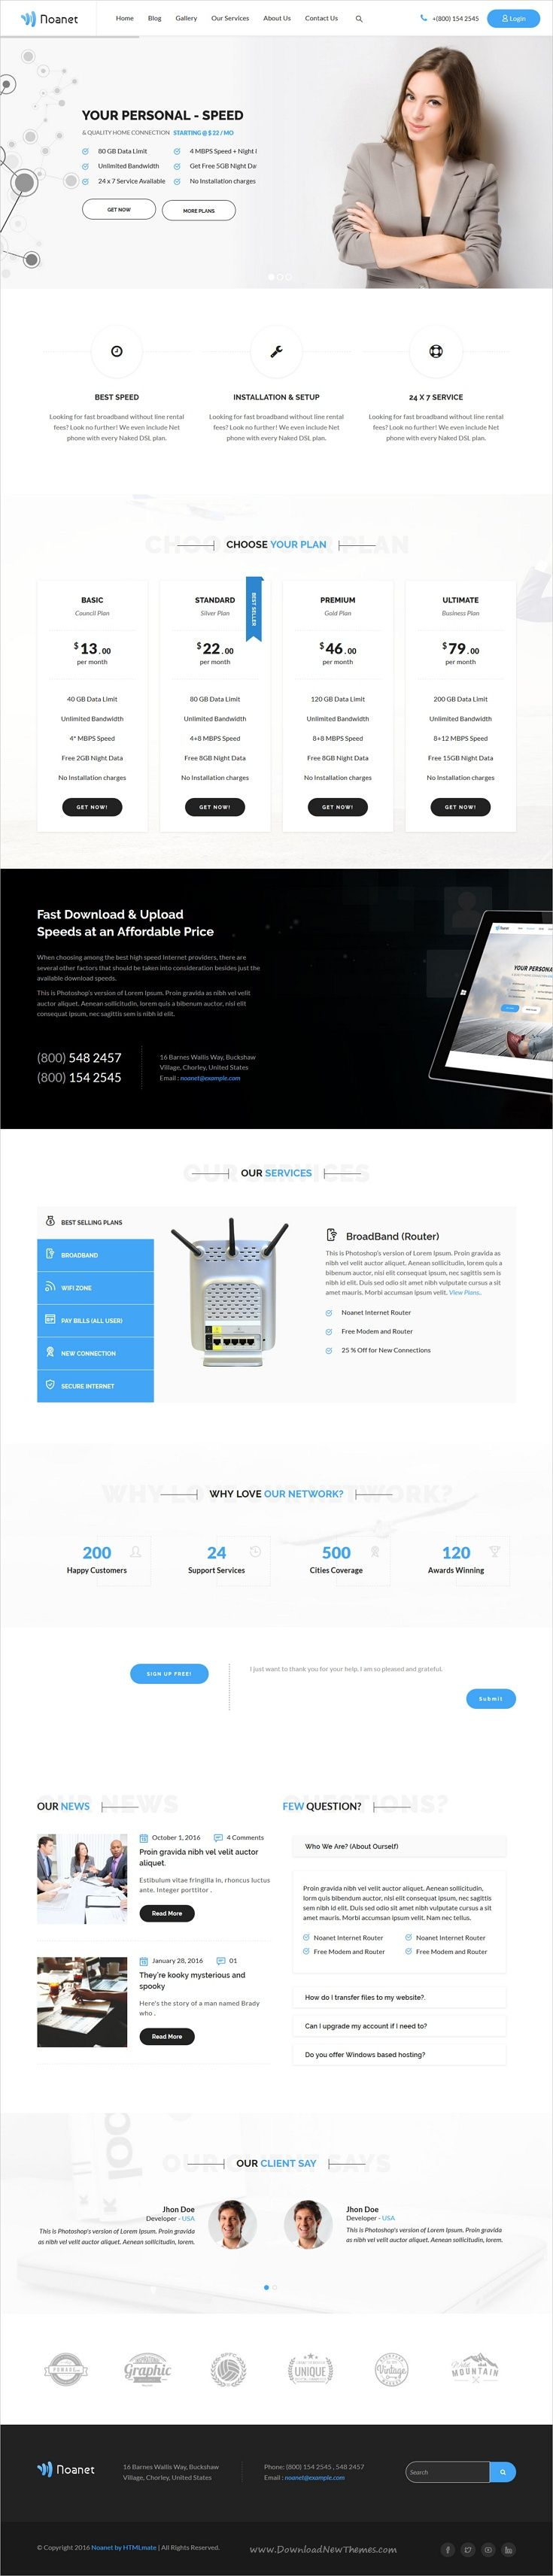 Noanet is clean and modern design 2in1 responsive HTML5 #bootstrap template for #internet provider and digital #network companies website download now➩ https://themeforest.net/item/noanet-internet-provider-and-digital-network-html-template/19745595?ref=Datasata